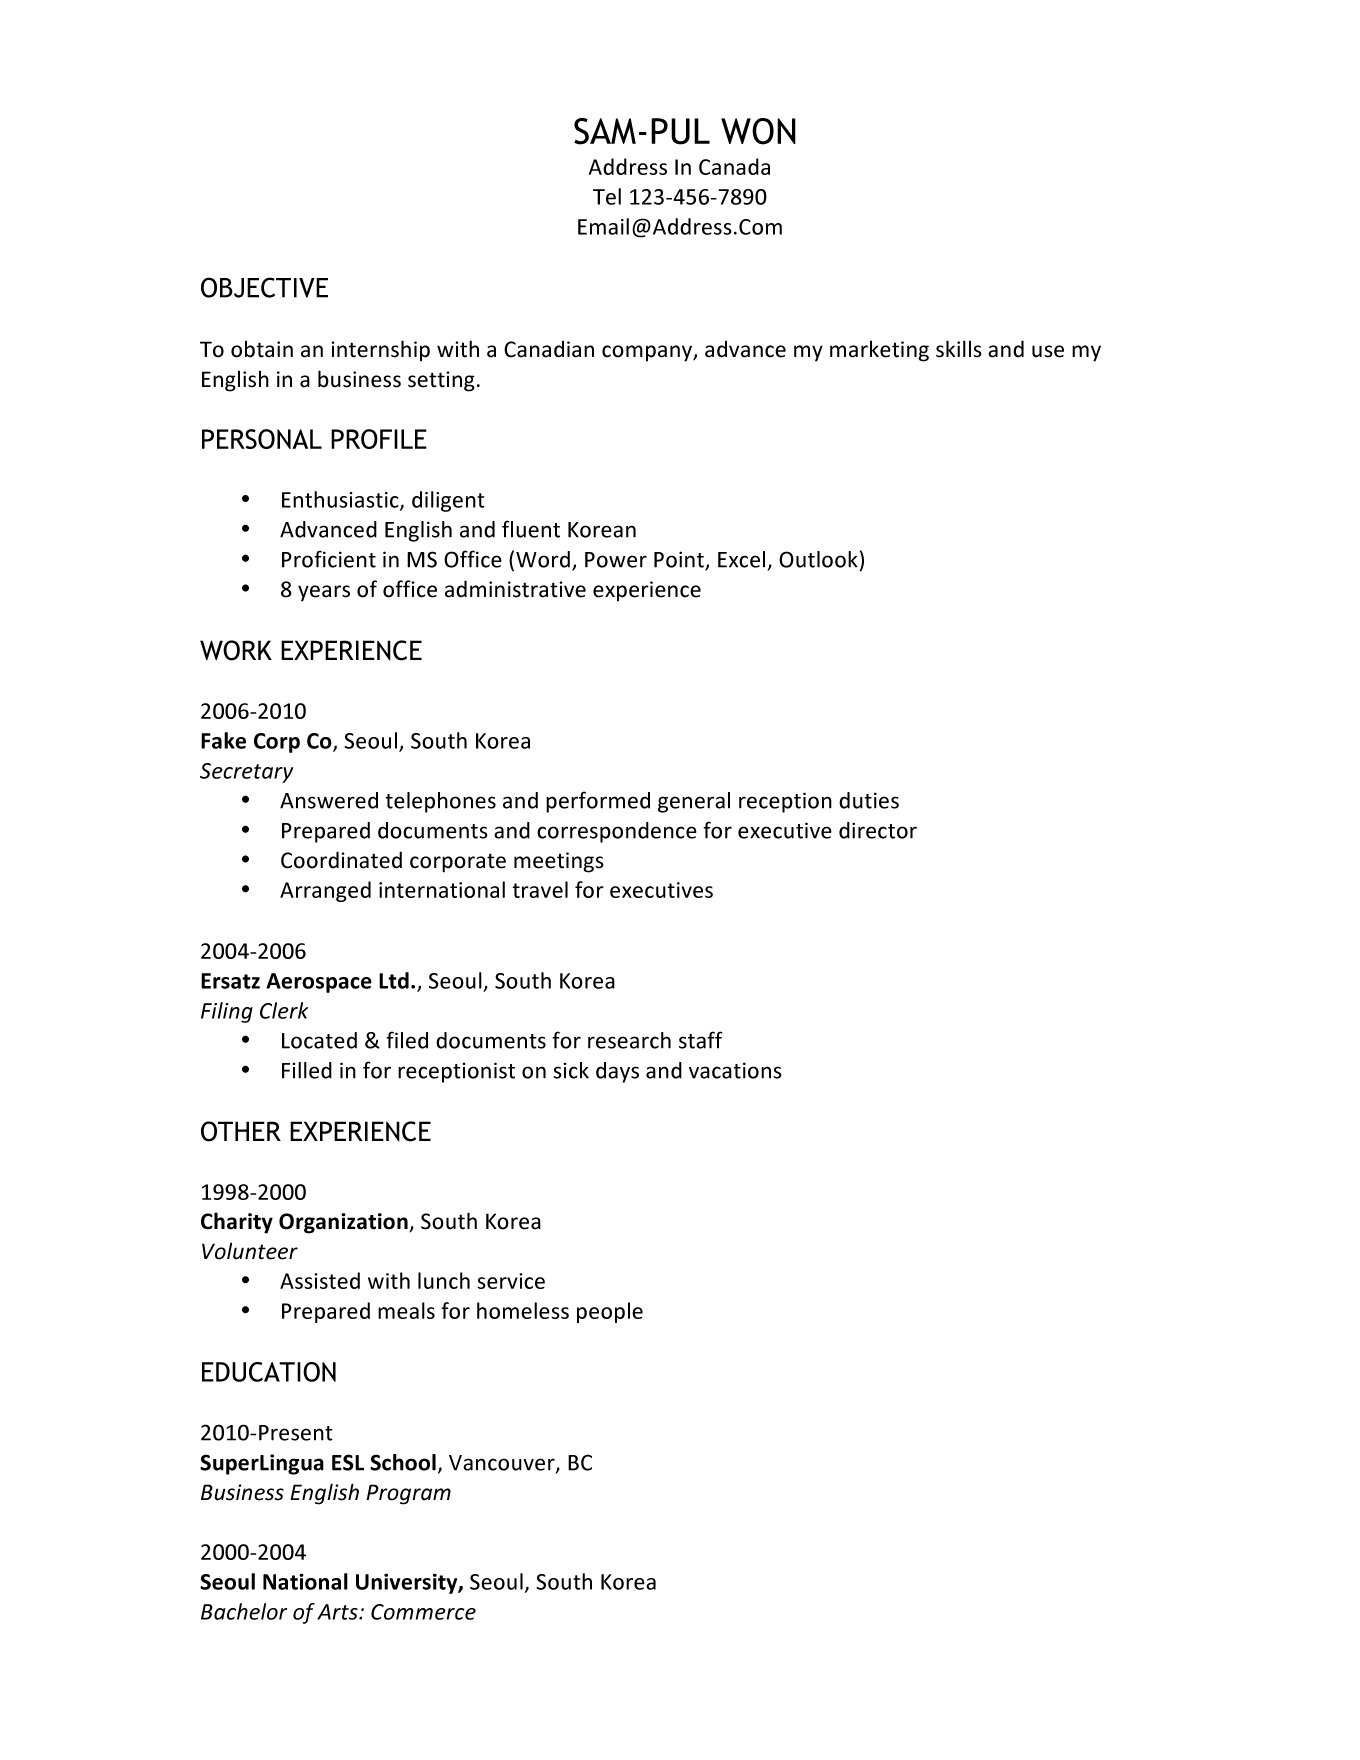 canadian customs resume, Invoice templates